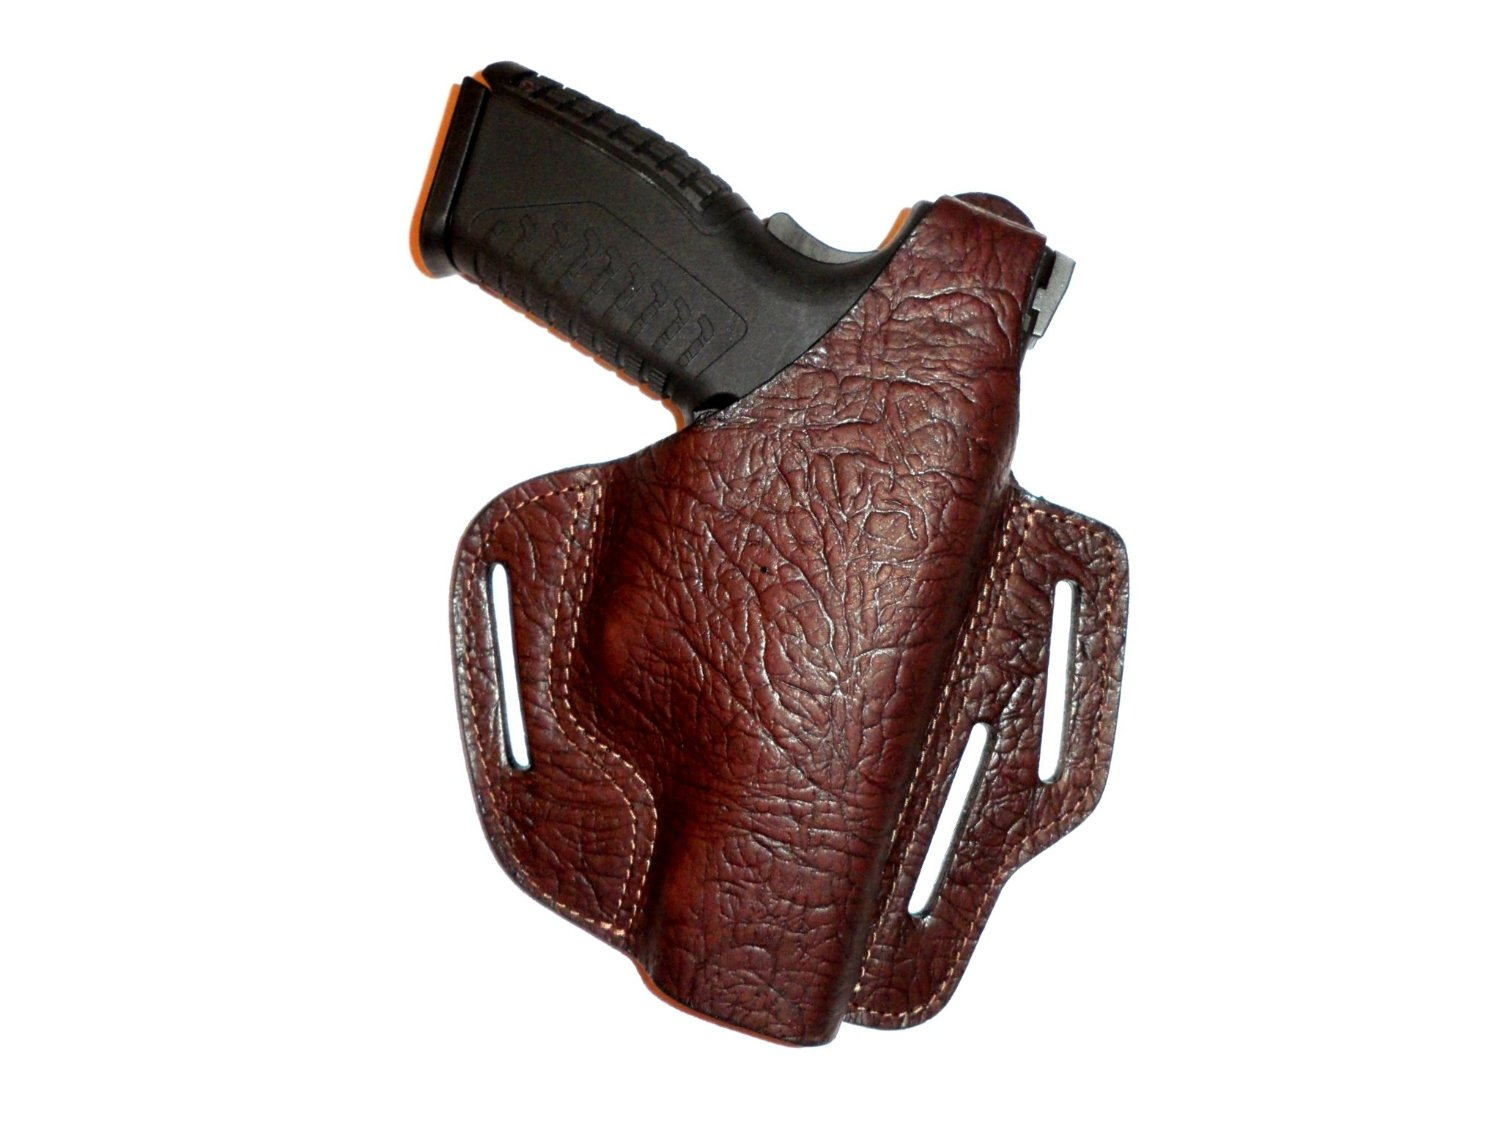 Concealed carry (OWB) gun holster Glock-19, Glock-23, 32, 25, 28 Springfield Armory XD, XDM, S&W M&P9, M&P40, M&P45